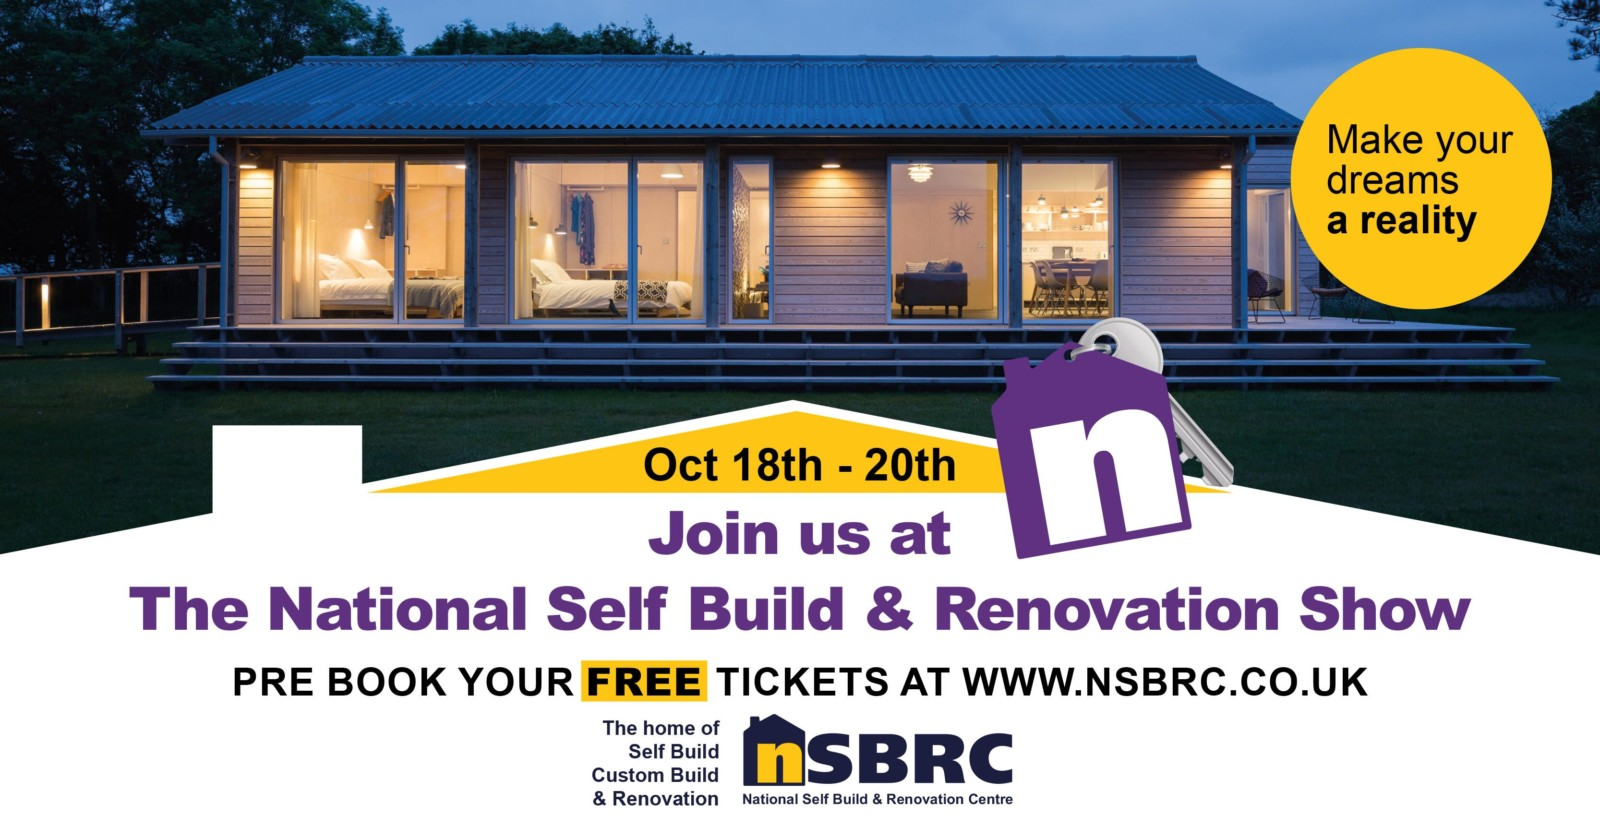 National Self Build & Renovation Show Autumn 2019